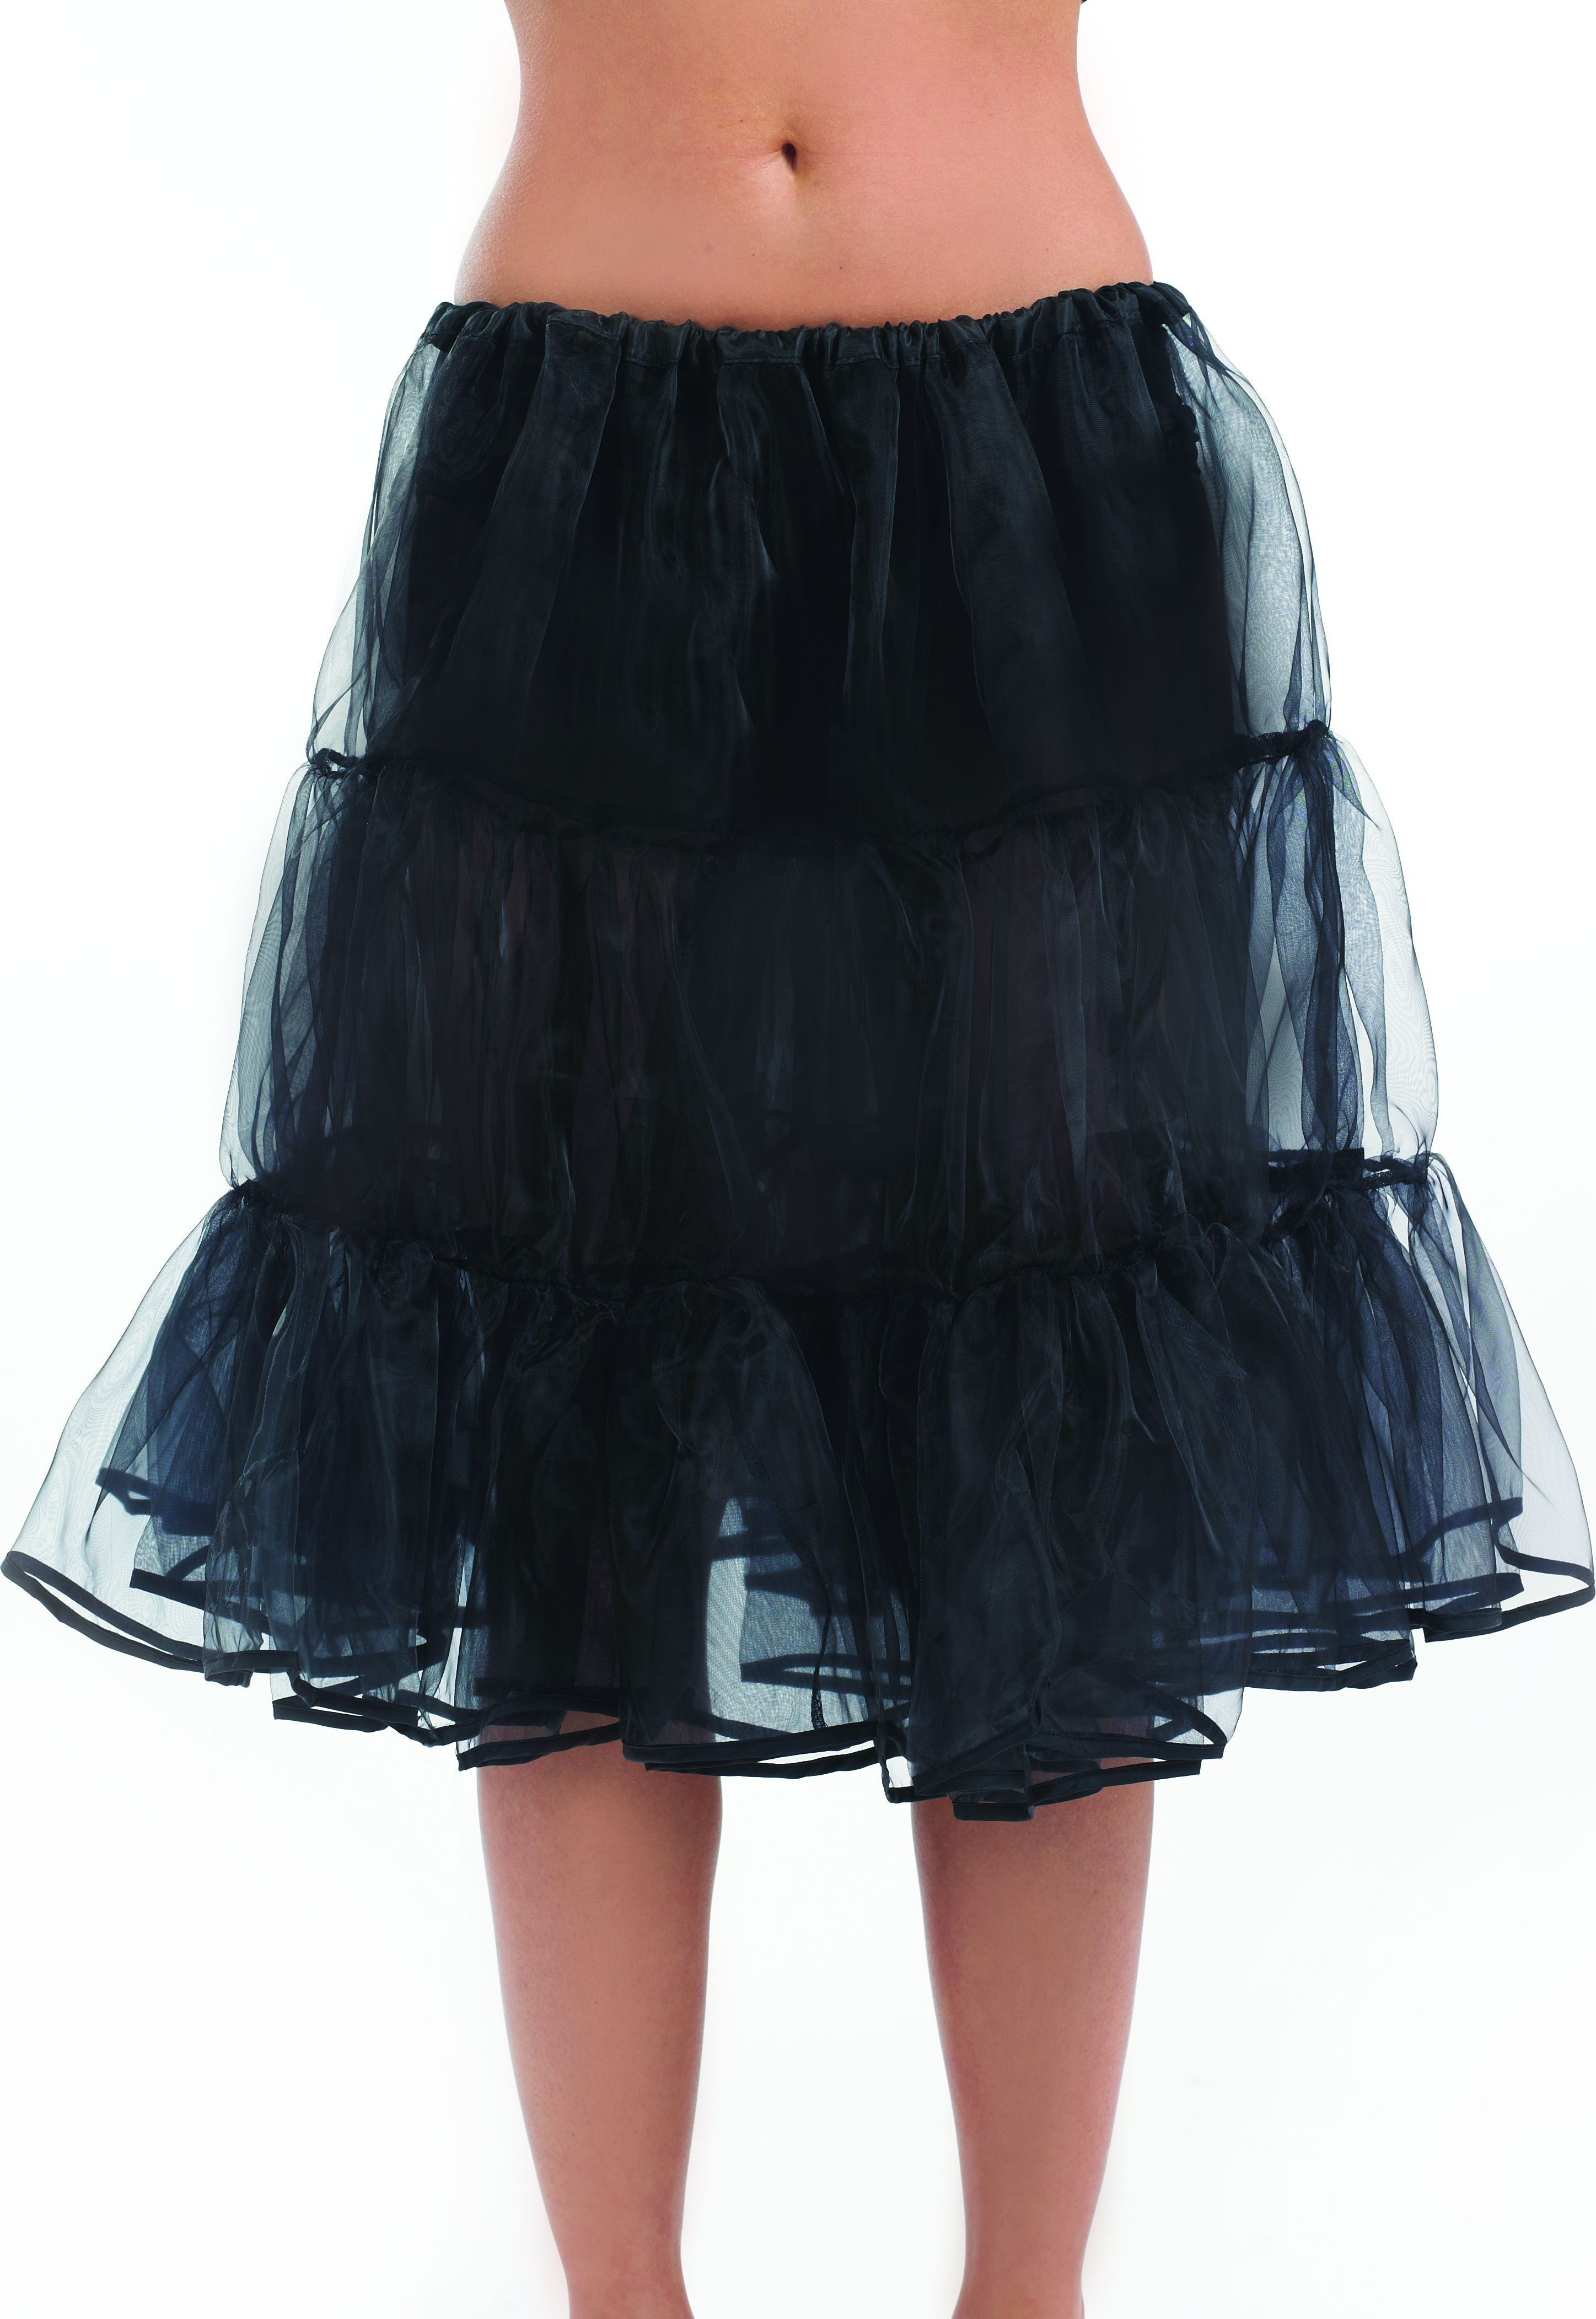 Long Black Underskirt (Halloween Fancy Dress)